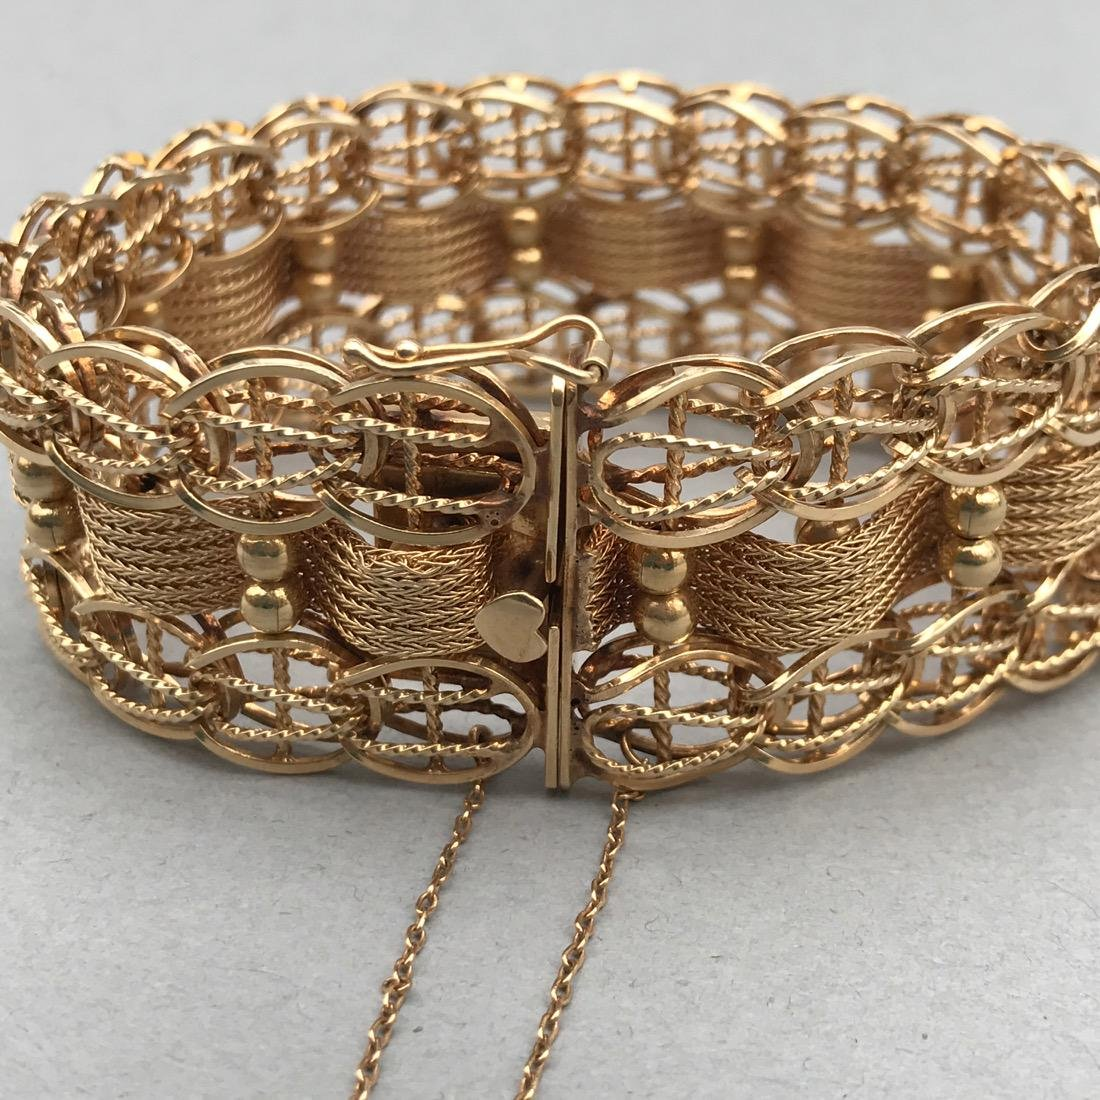 Ornate Woven Chain 14K Gold Bracelet - 3